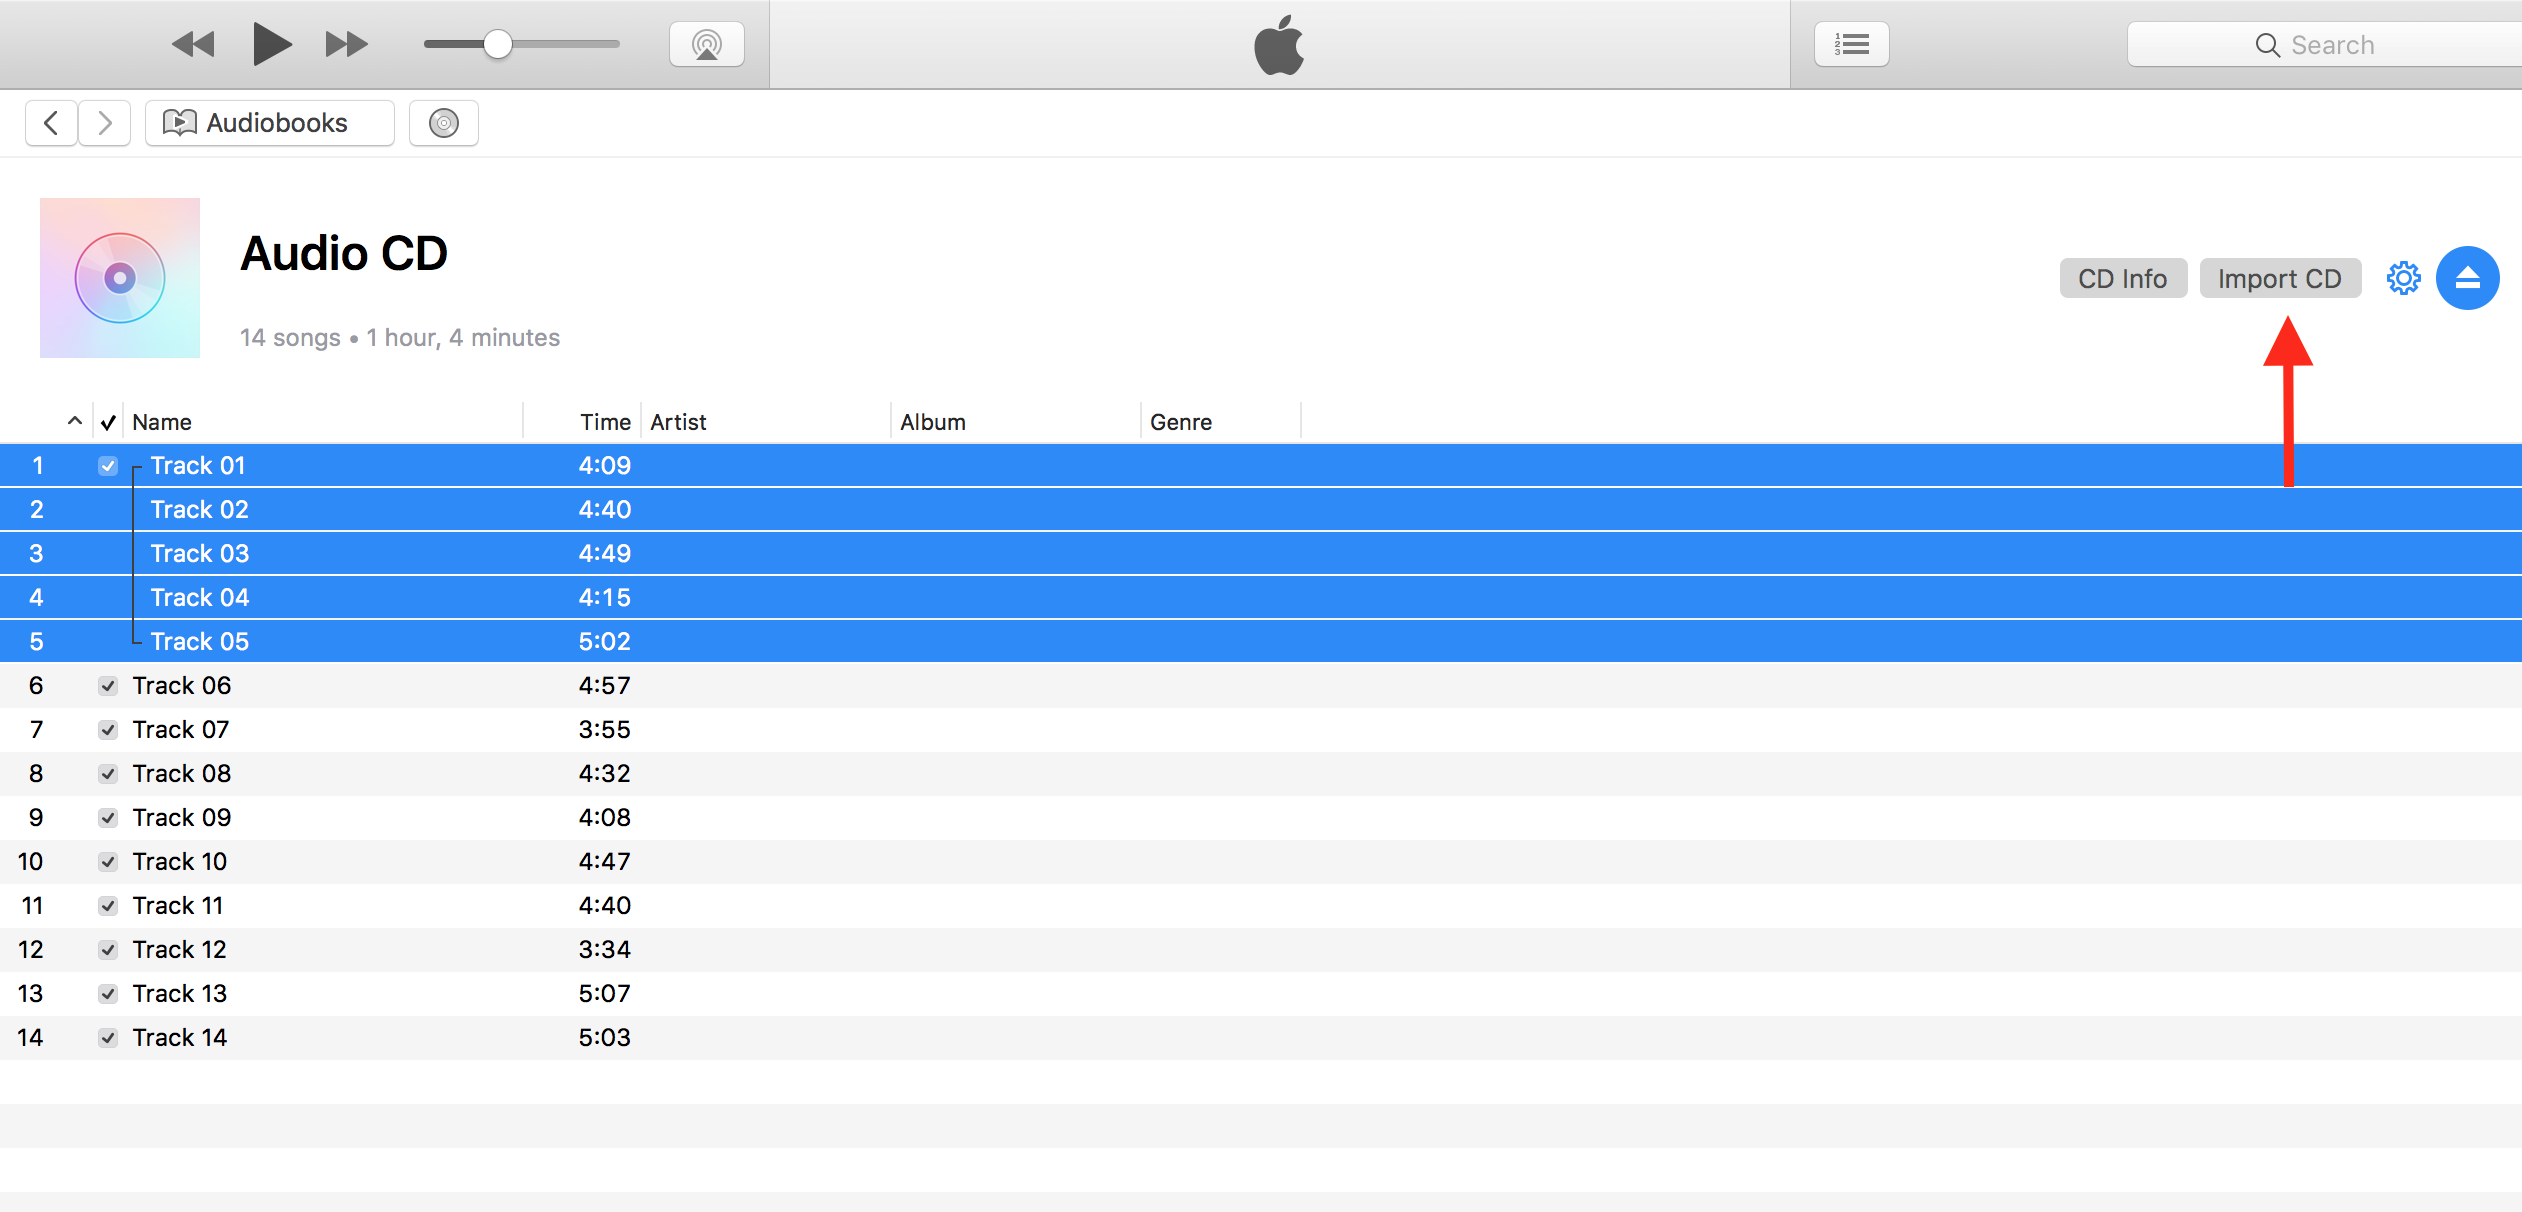 Marked tracks imported in iTunes